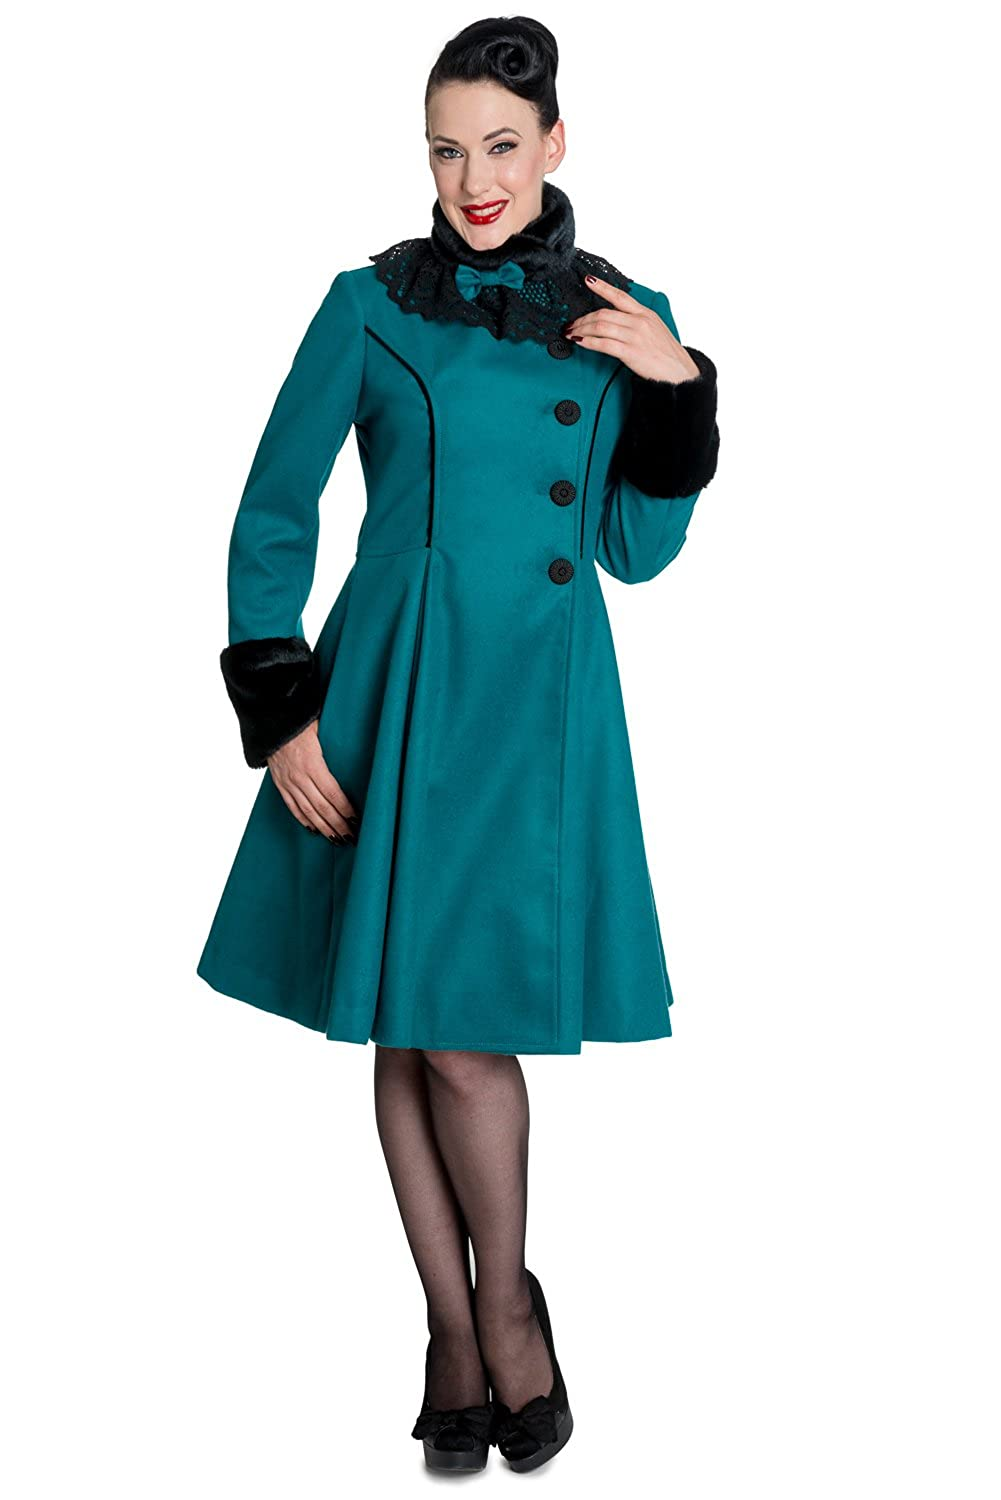 Vintage Coats & Jackets | Retro Coats and Jackets Hell Bunny Vintage Victorian Design Teal Green Angeline Winter Coat $169.00 AT vintagedancer.com